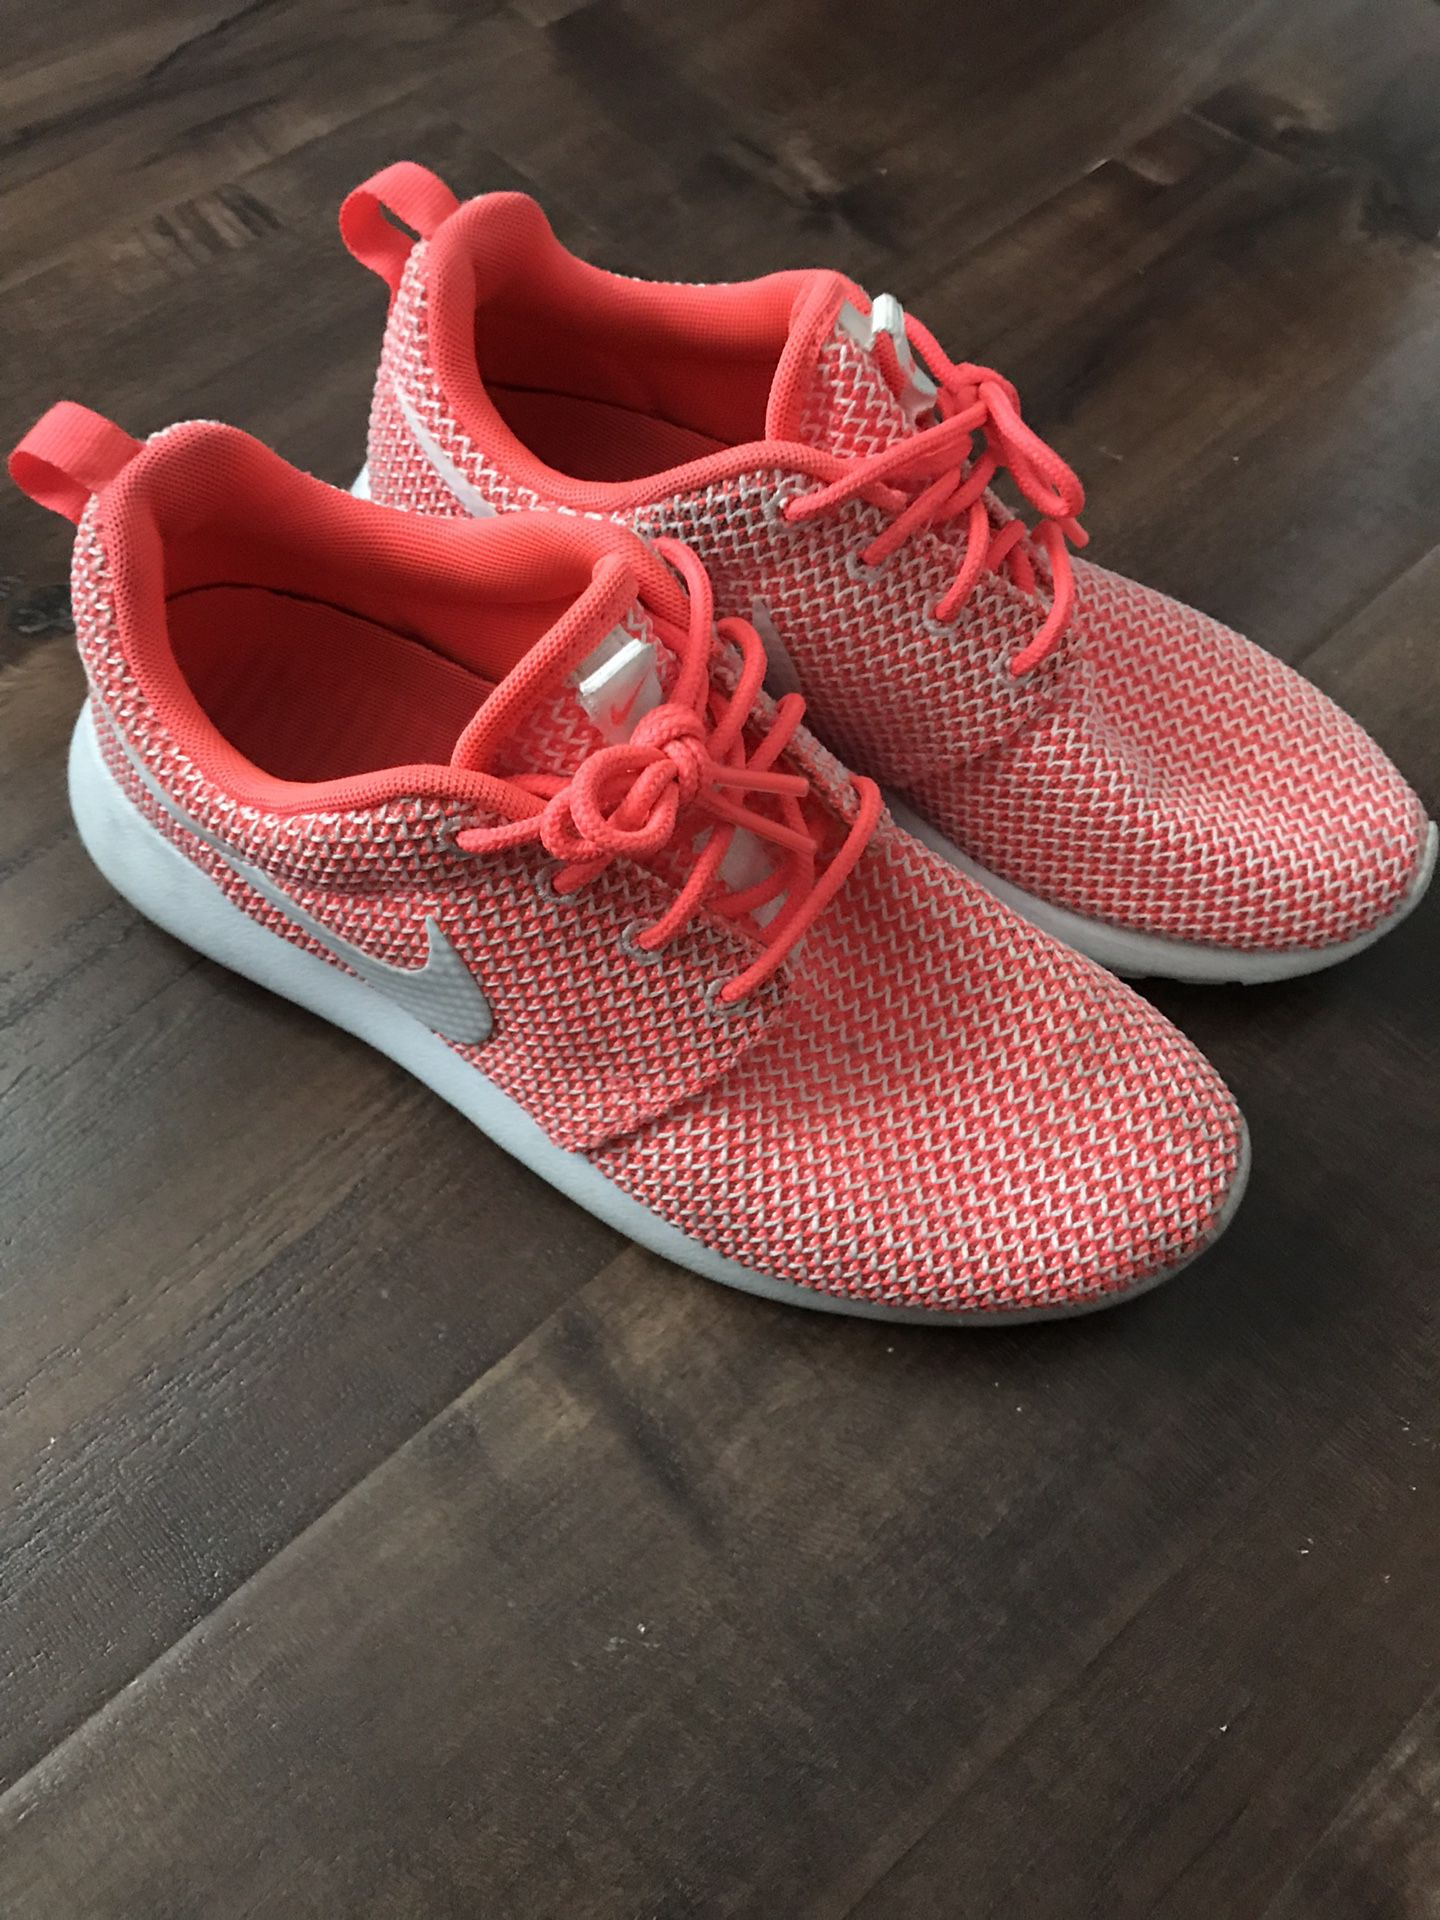 Neon pink Nike shoes